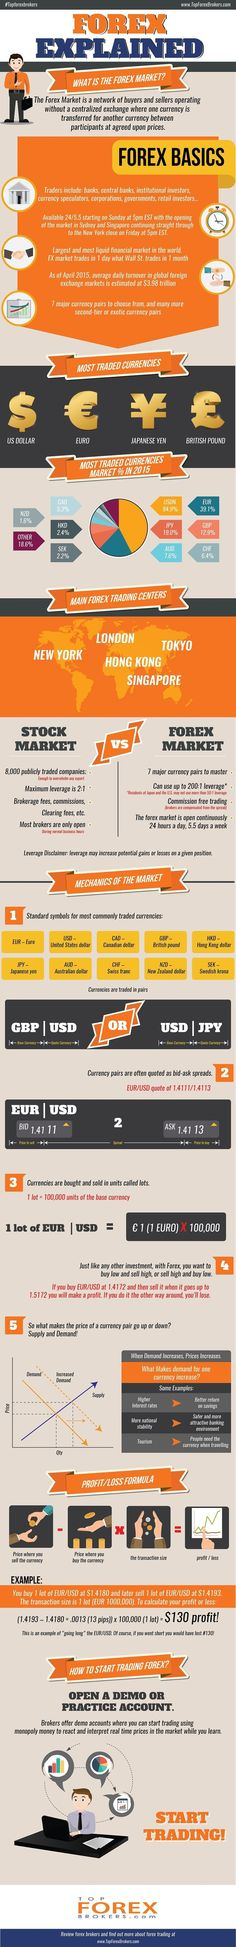 A Look At Forex Trading #infographic #ForexTradingBasics